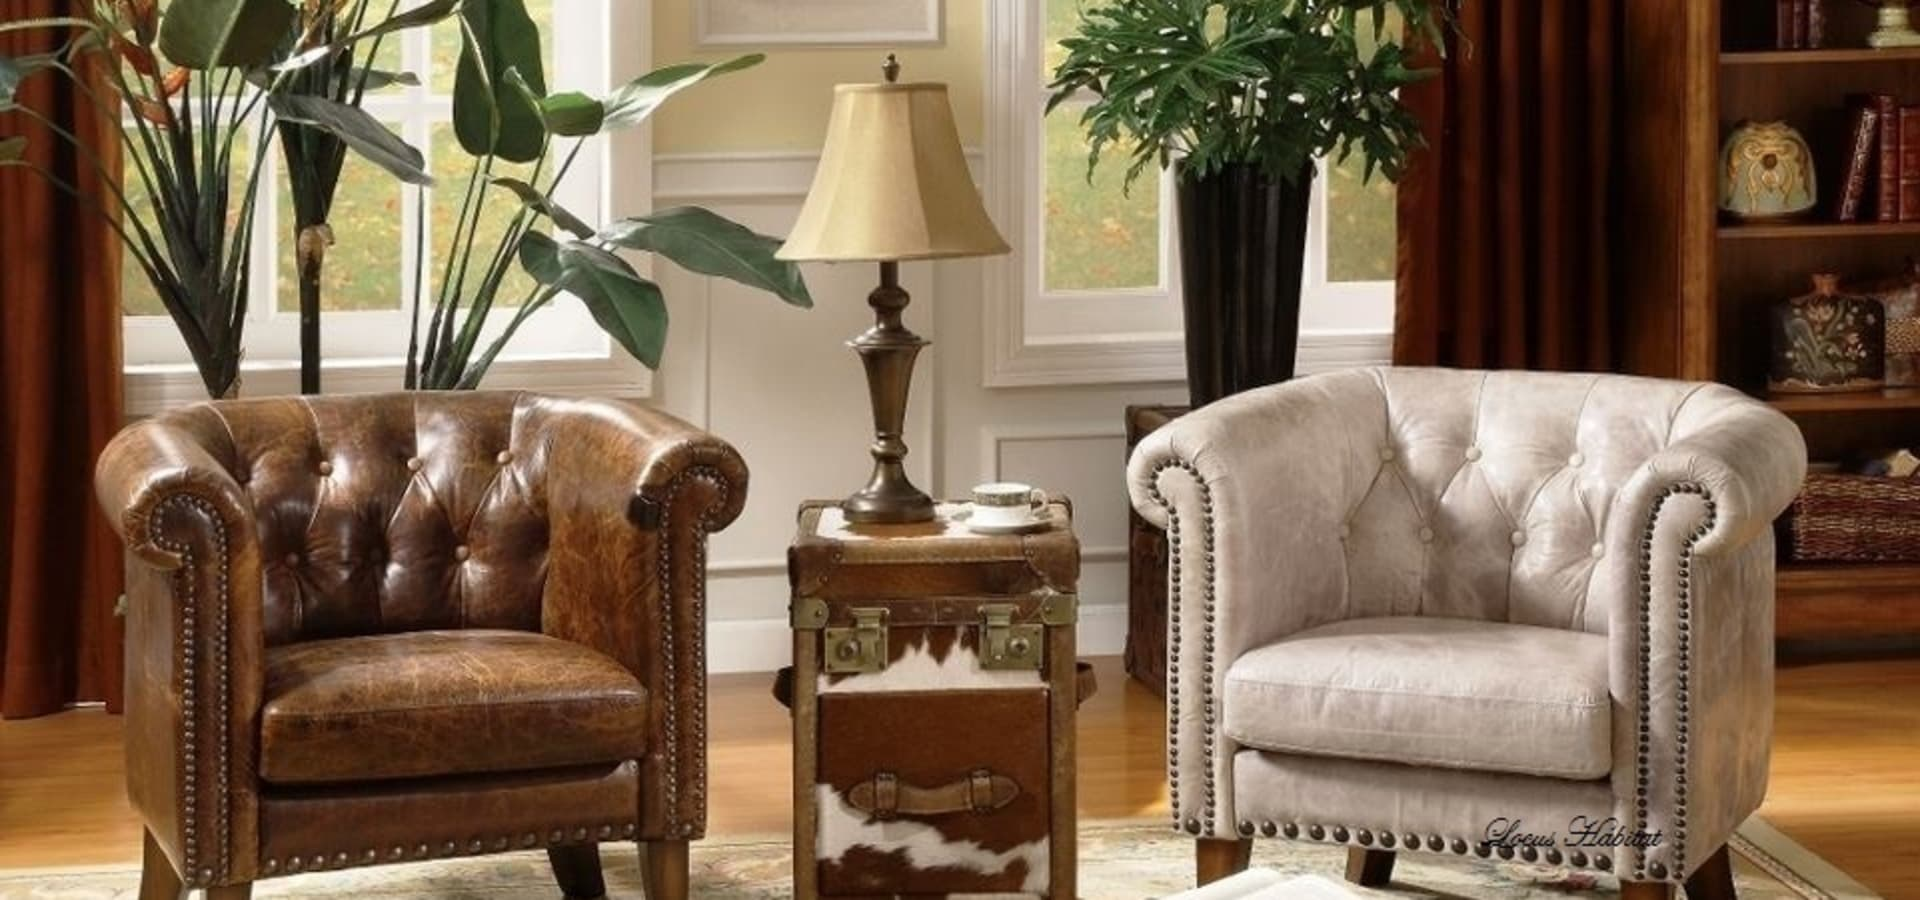 Vintage design living room with chesterfield sofa by locus - Chesterfield sofa living room ideas ...